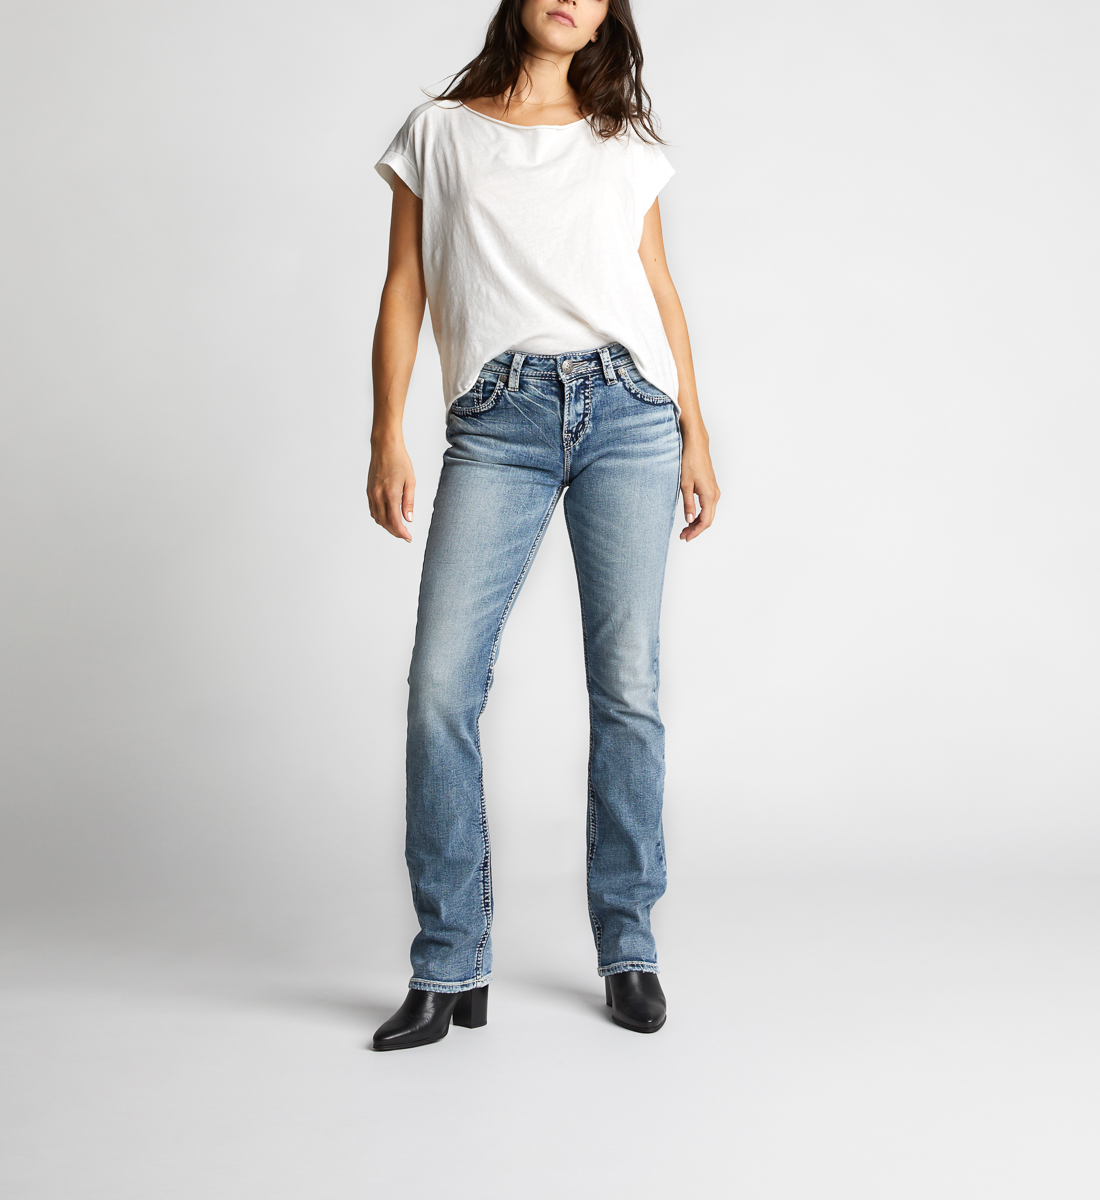 0f173f90 Suki High Baby Boot Light Wash | Silver Jeans